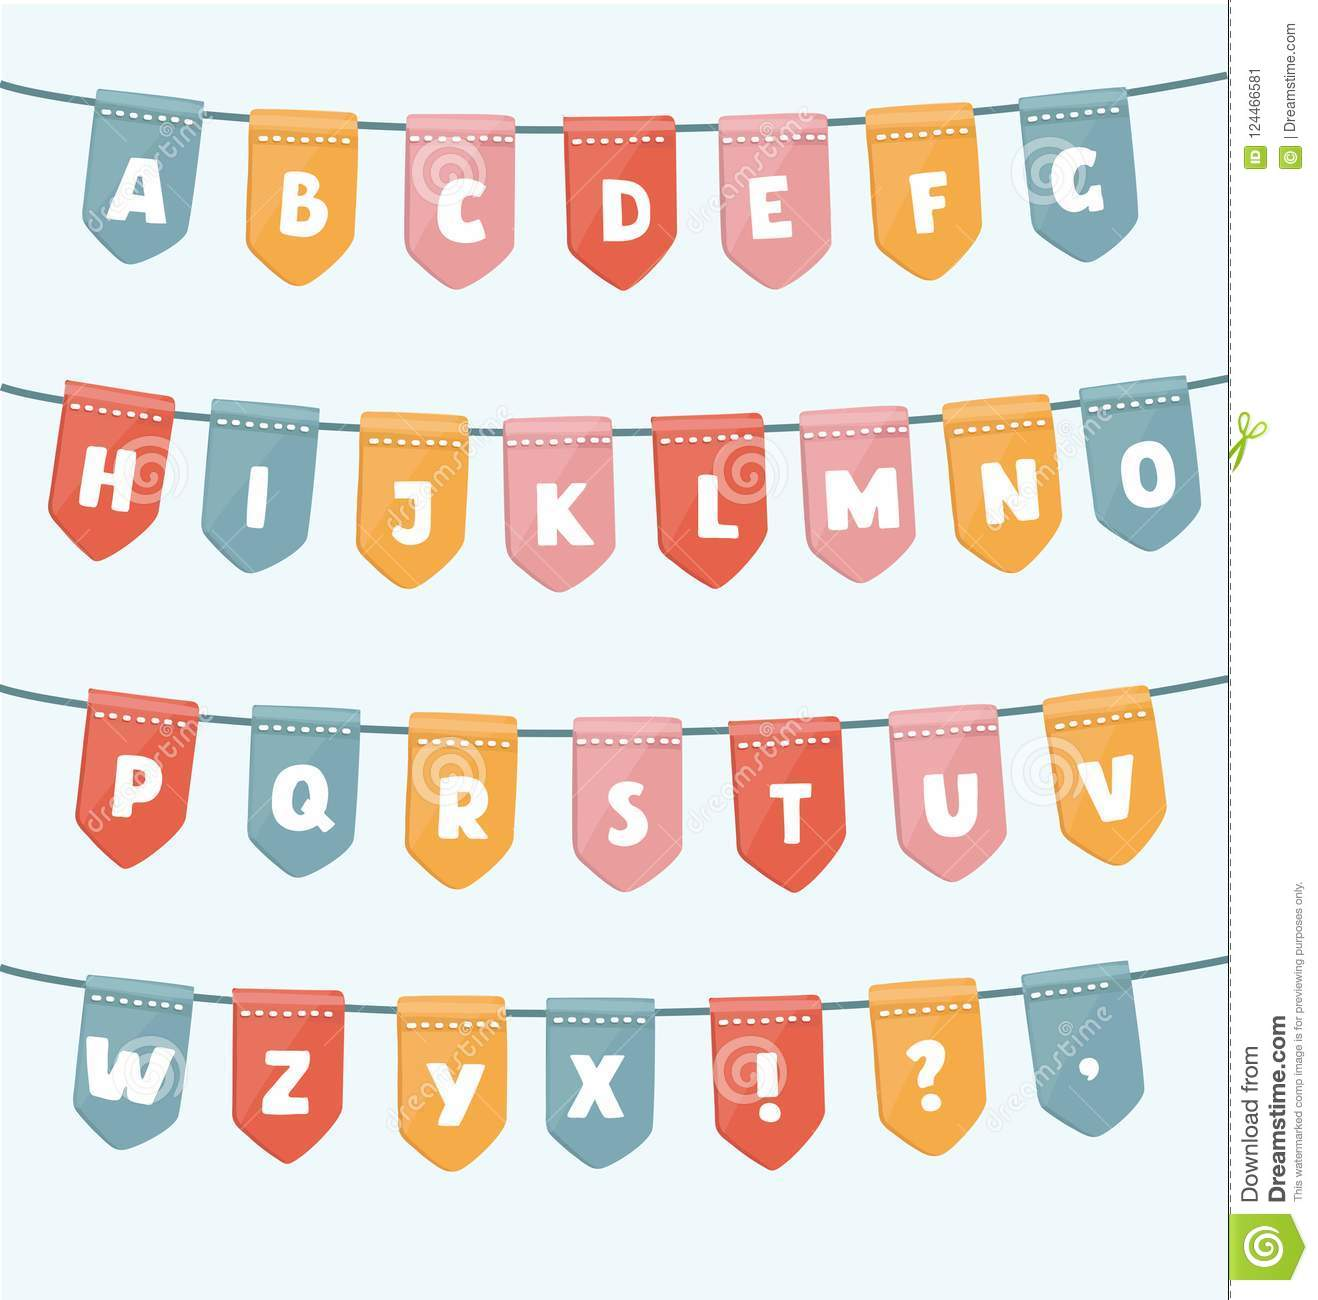 ABC with party flags. Handmade font.Smartly grouped and layered.